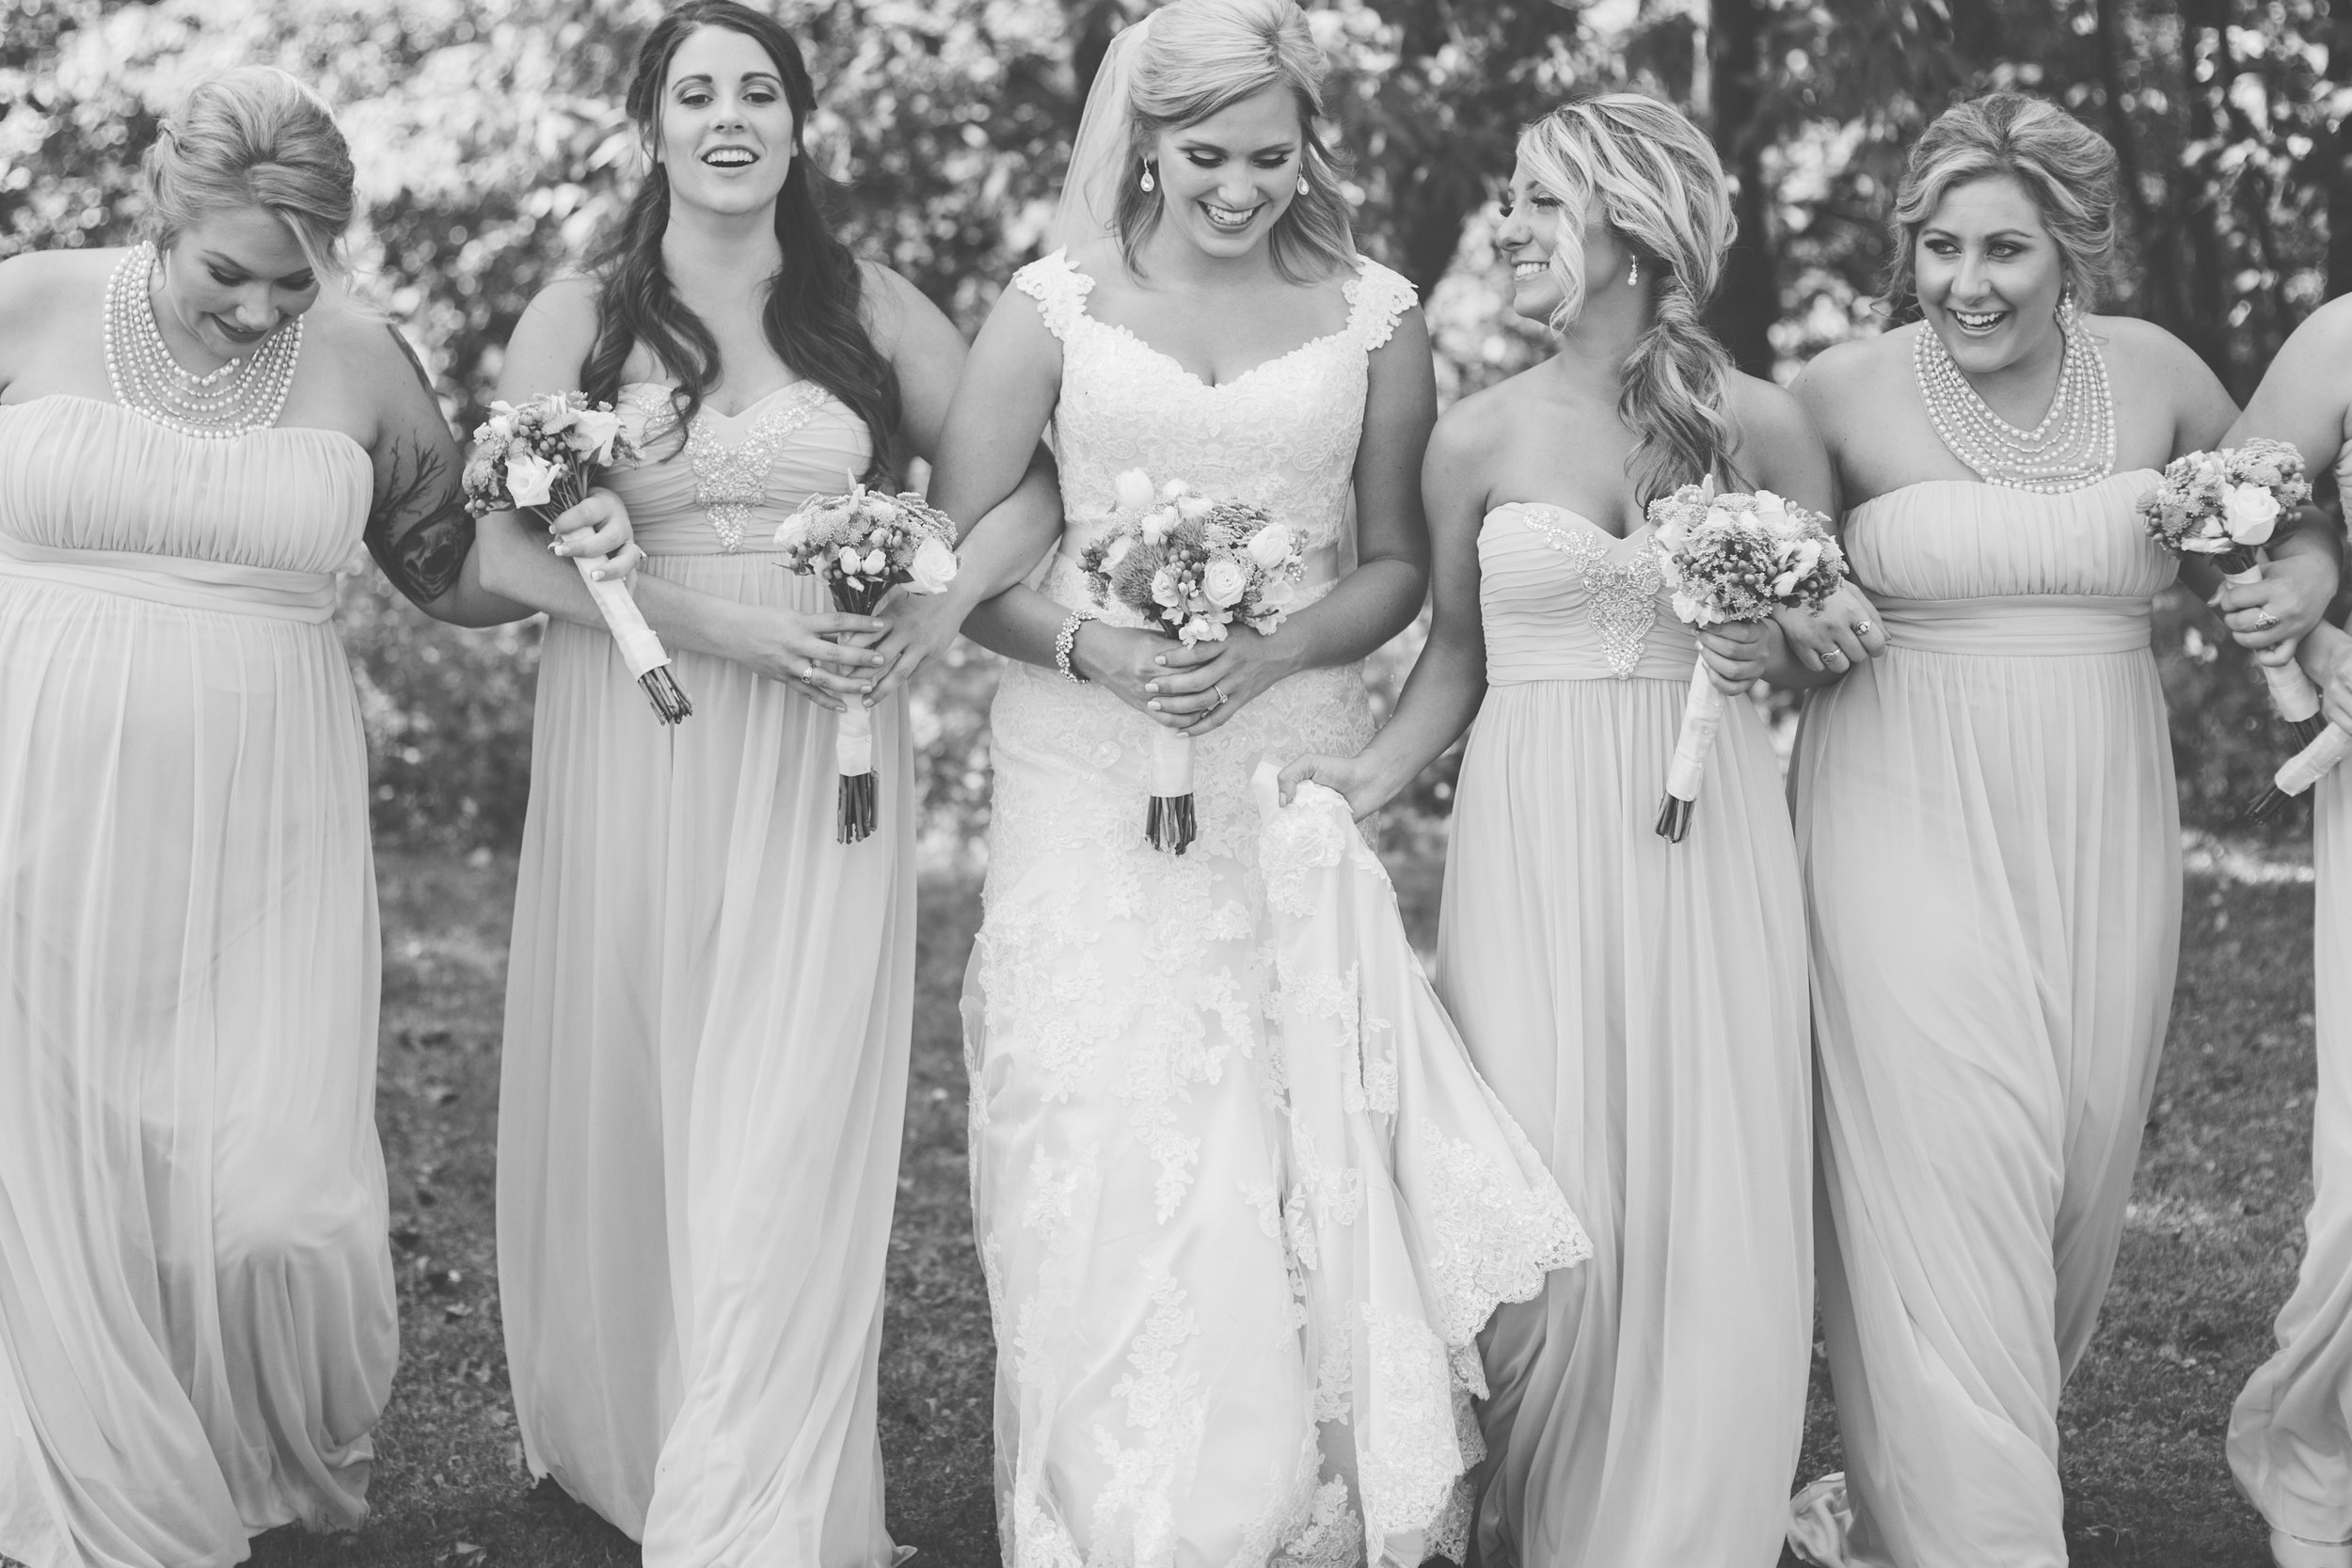 Bride and bridesmaids laughing and walking in Minnesota summer wedding black and white photo Minnesota wedding photography Mallory Kiesow Photography